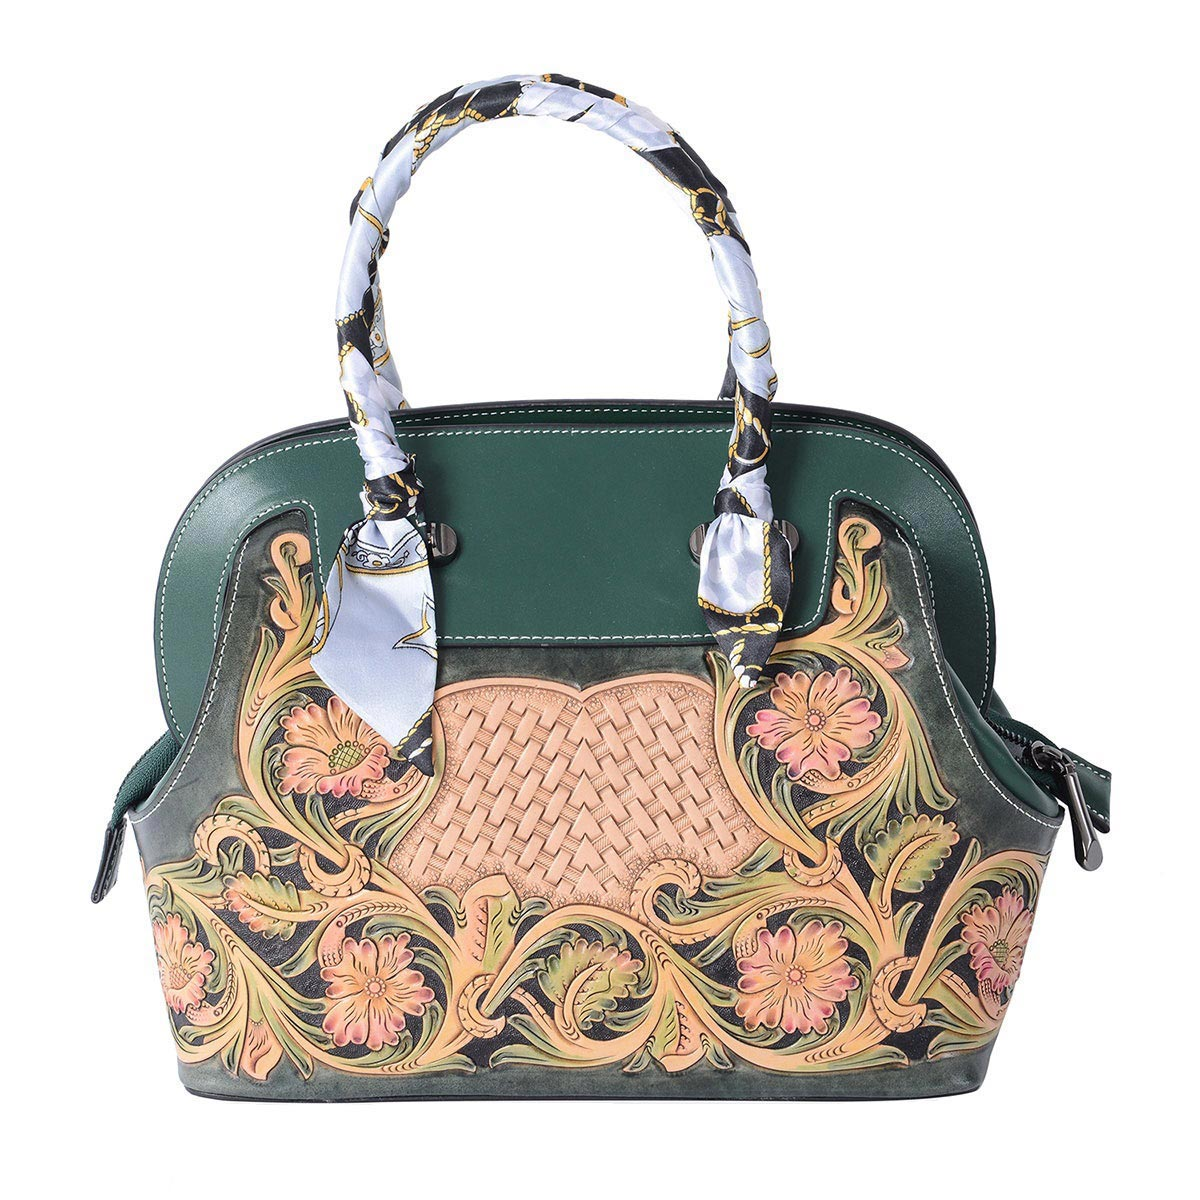 3acd83f179e22 Luxury - Green 3D Engraved Flower Pattern Genuine Leather Tote Bag (12x6x9  in)